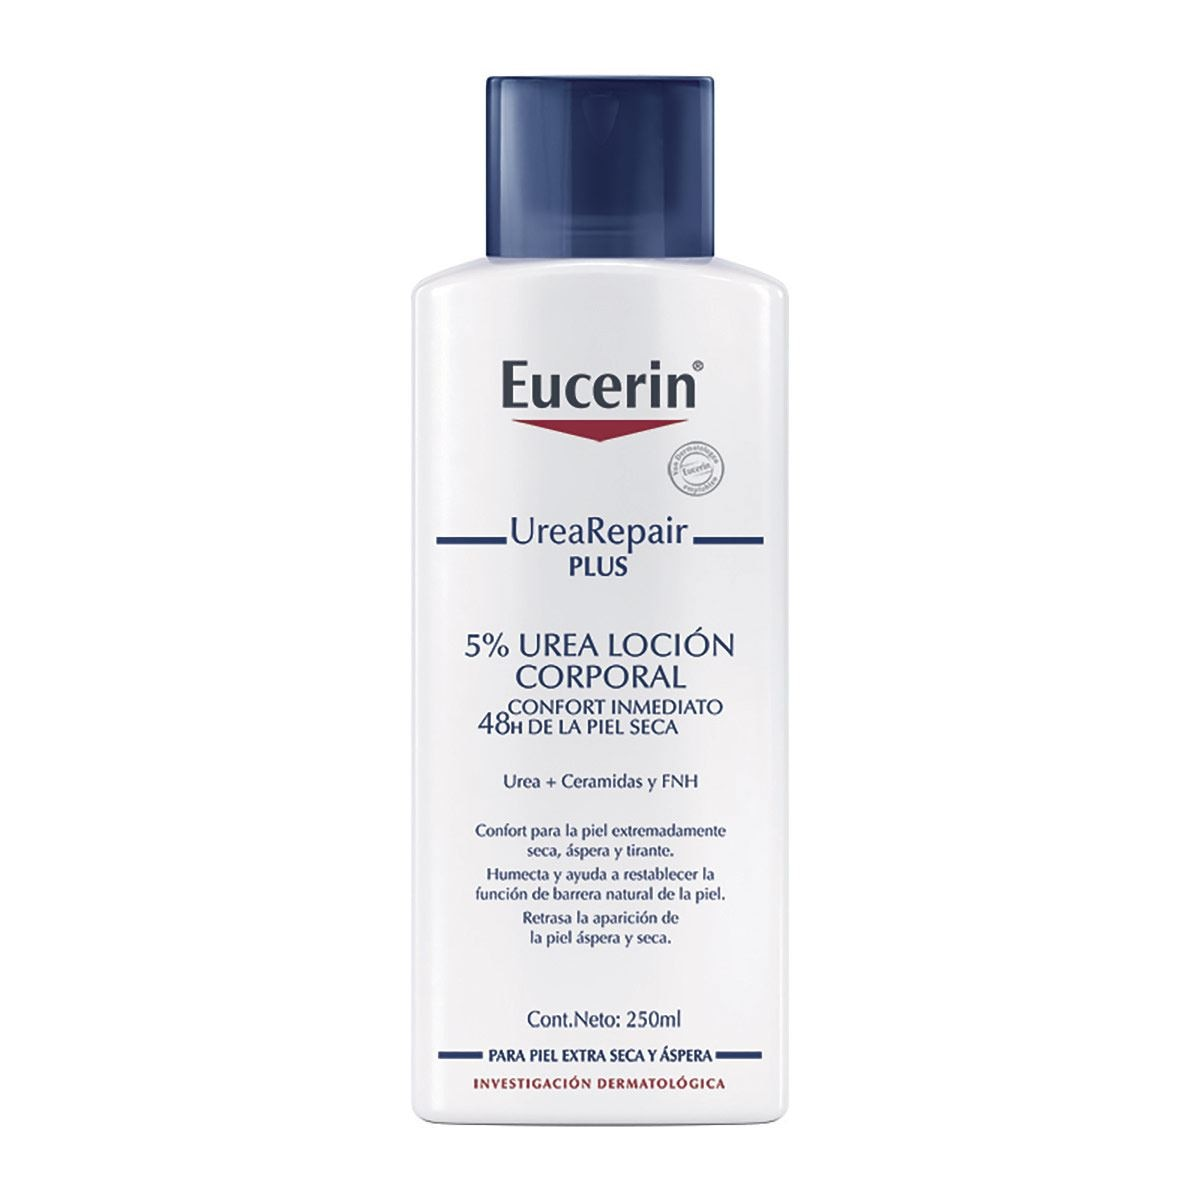 Eucerin Complete Repair Urea 5%, 250ml